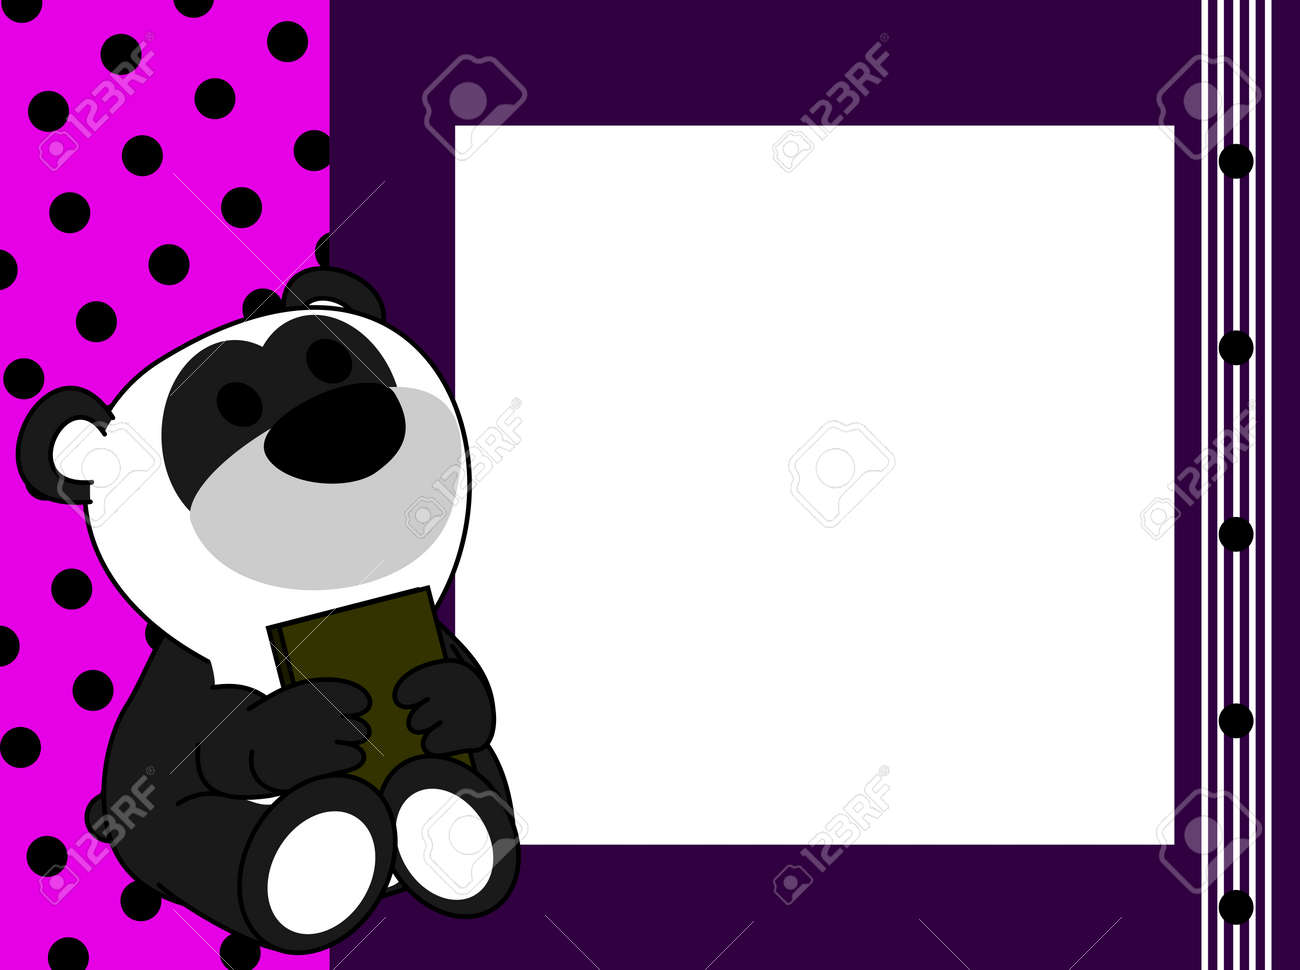 Anxiety Stuffed Animal, Cute Baby Panda Teddy Bear Book Picture Frame Background In Vector Royalty Free Cliparts Vectors And Stock Illustration Image 89687664